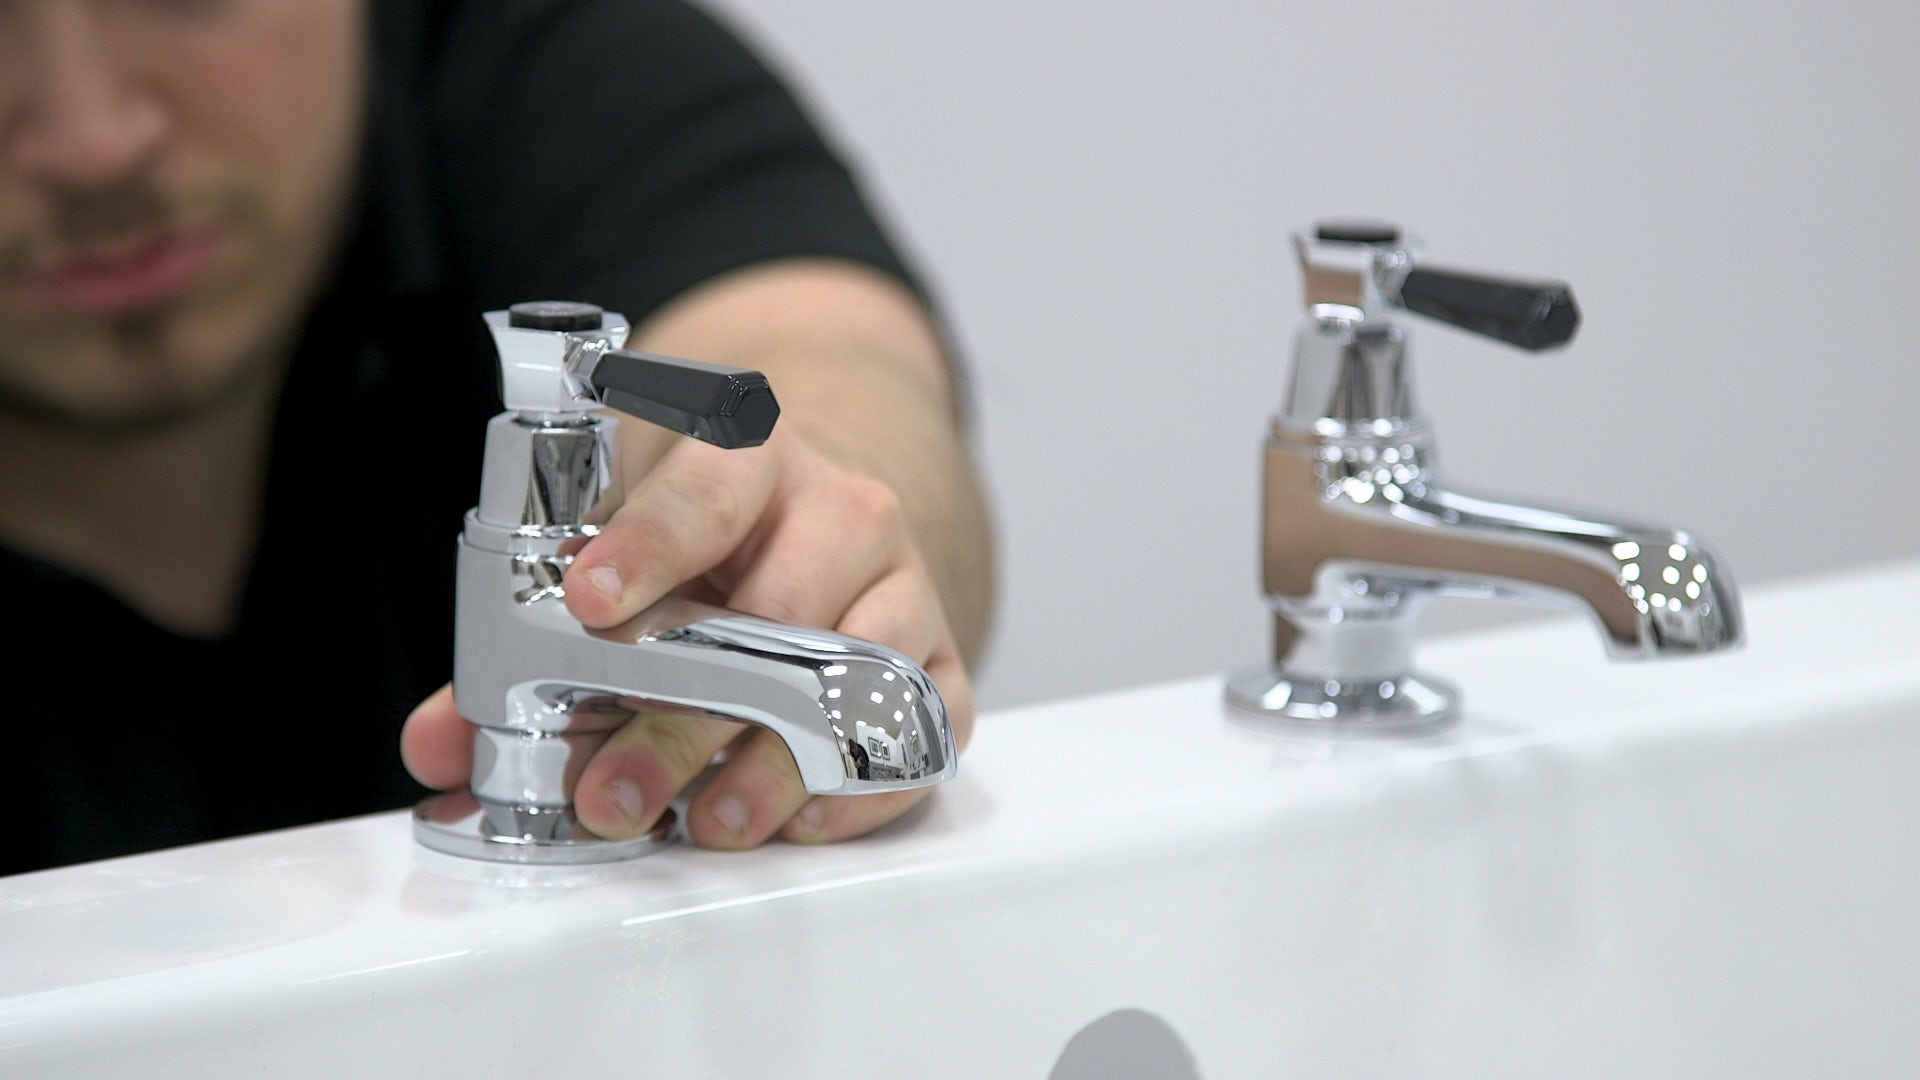 Fitting bath taps